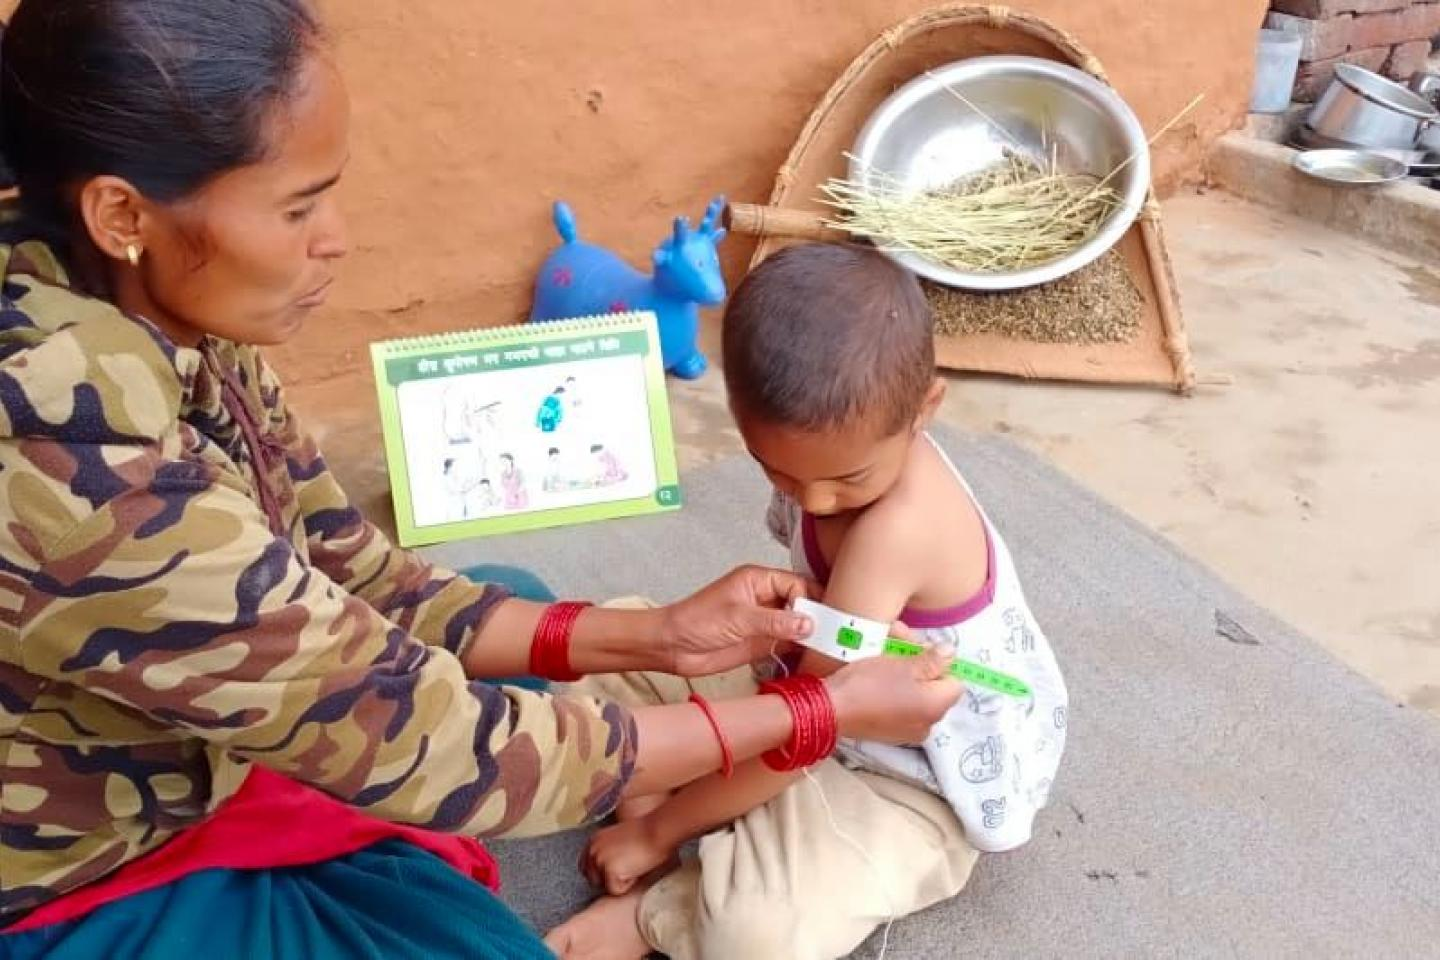 European Union and UNICEF partner to prevent malnutrition in children during the COVID-19 crisis